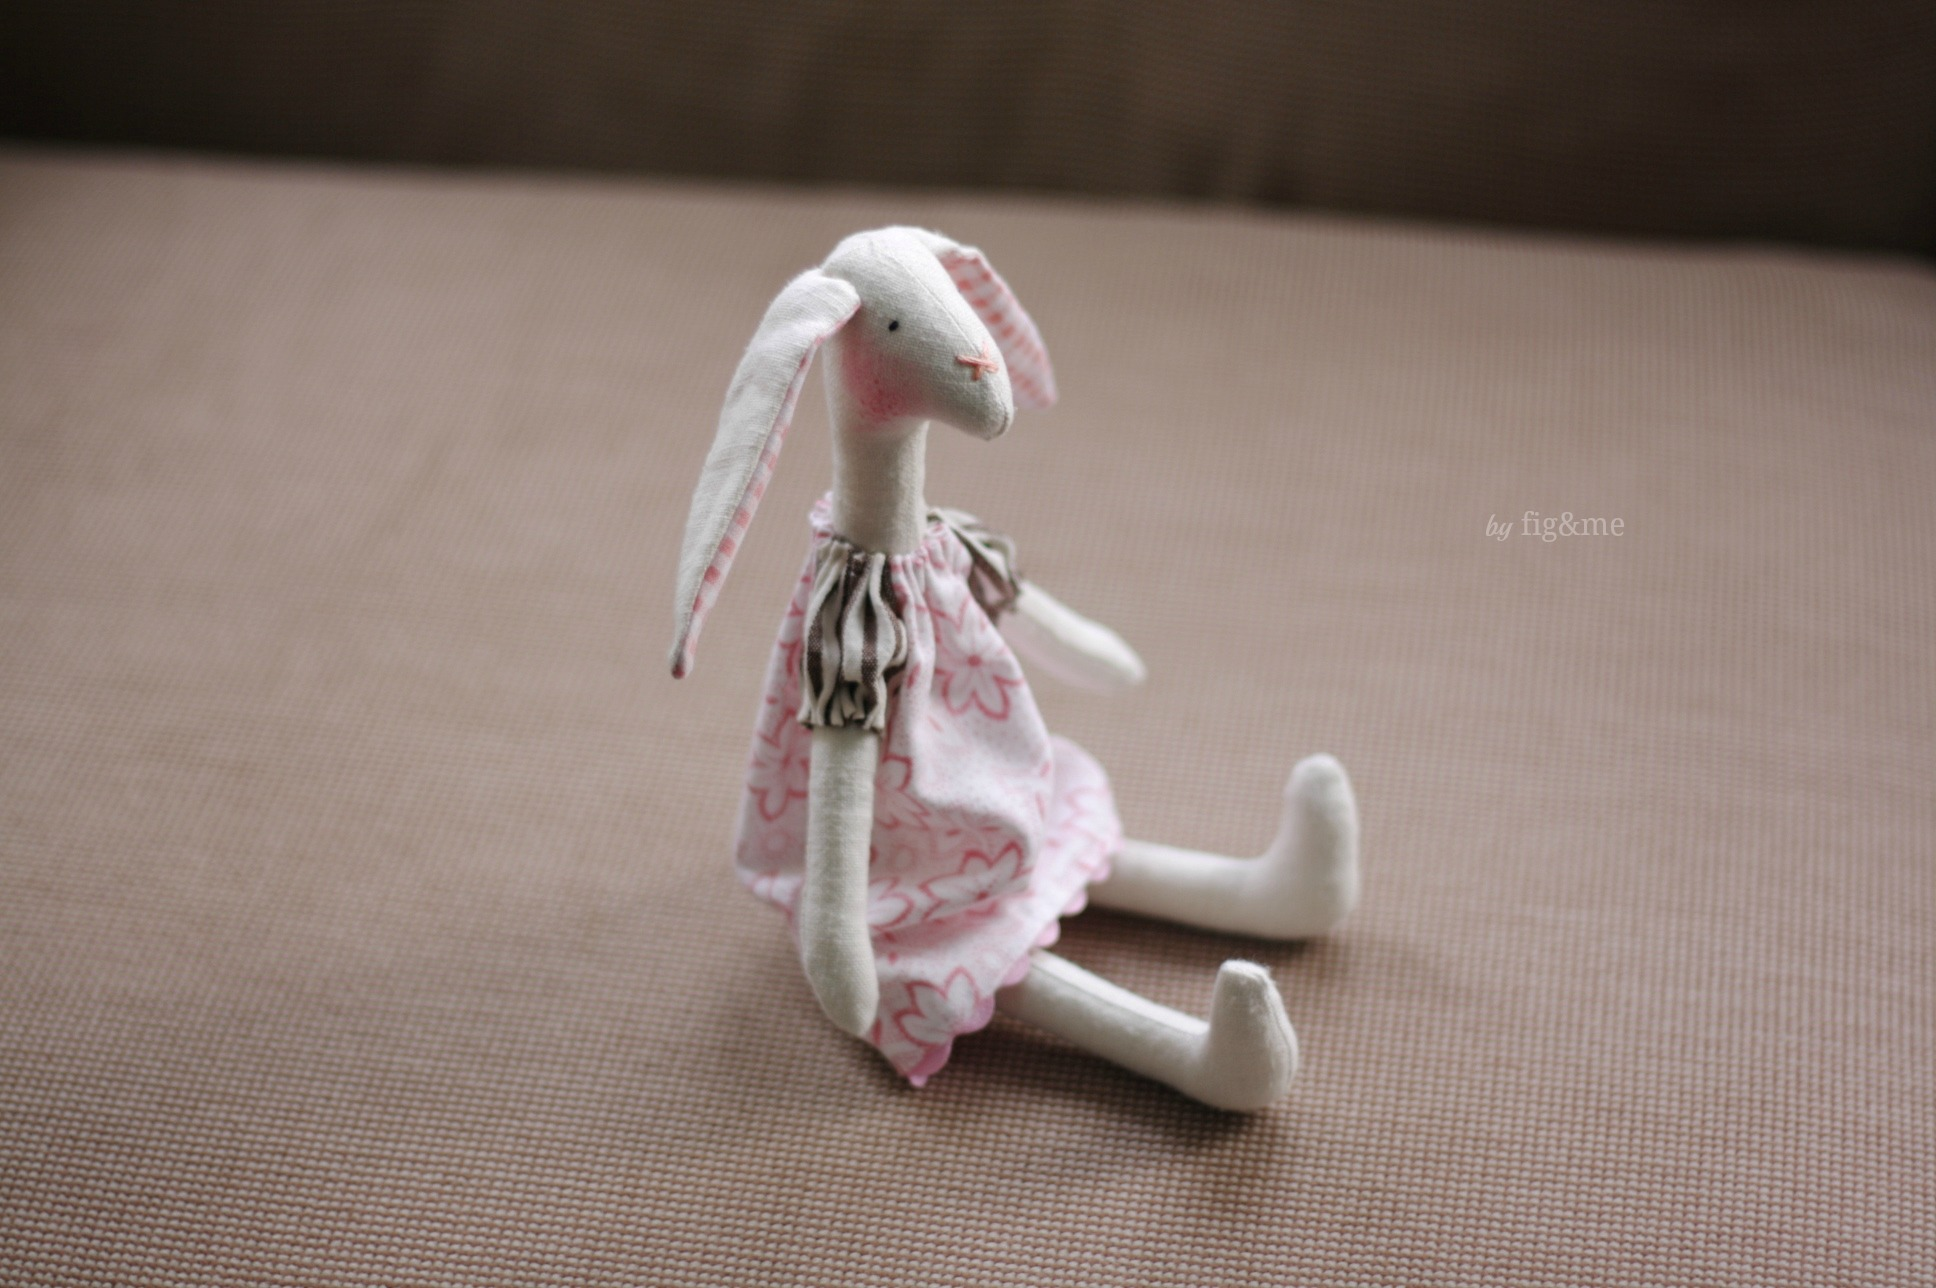 Mrs Wabbit, by Fig&me